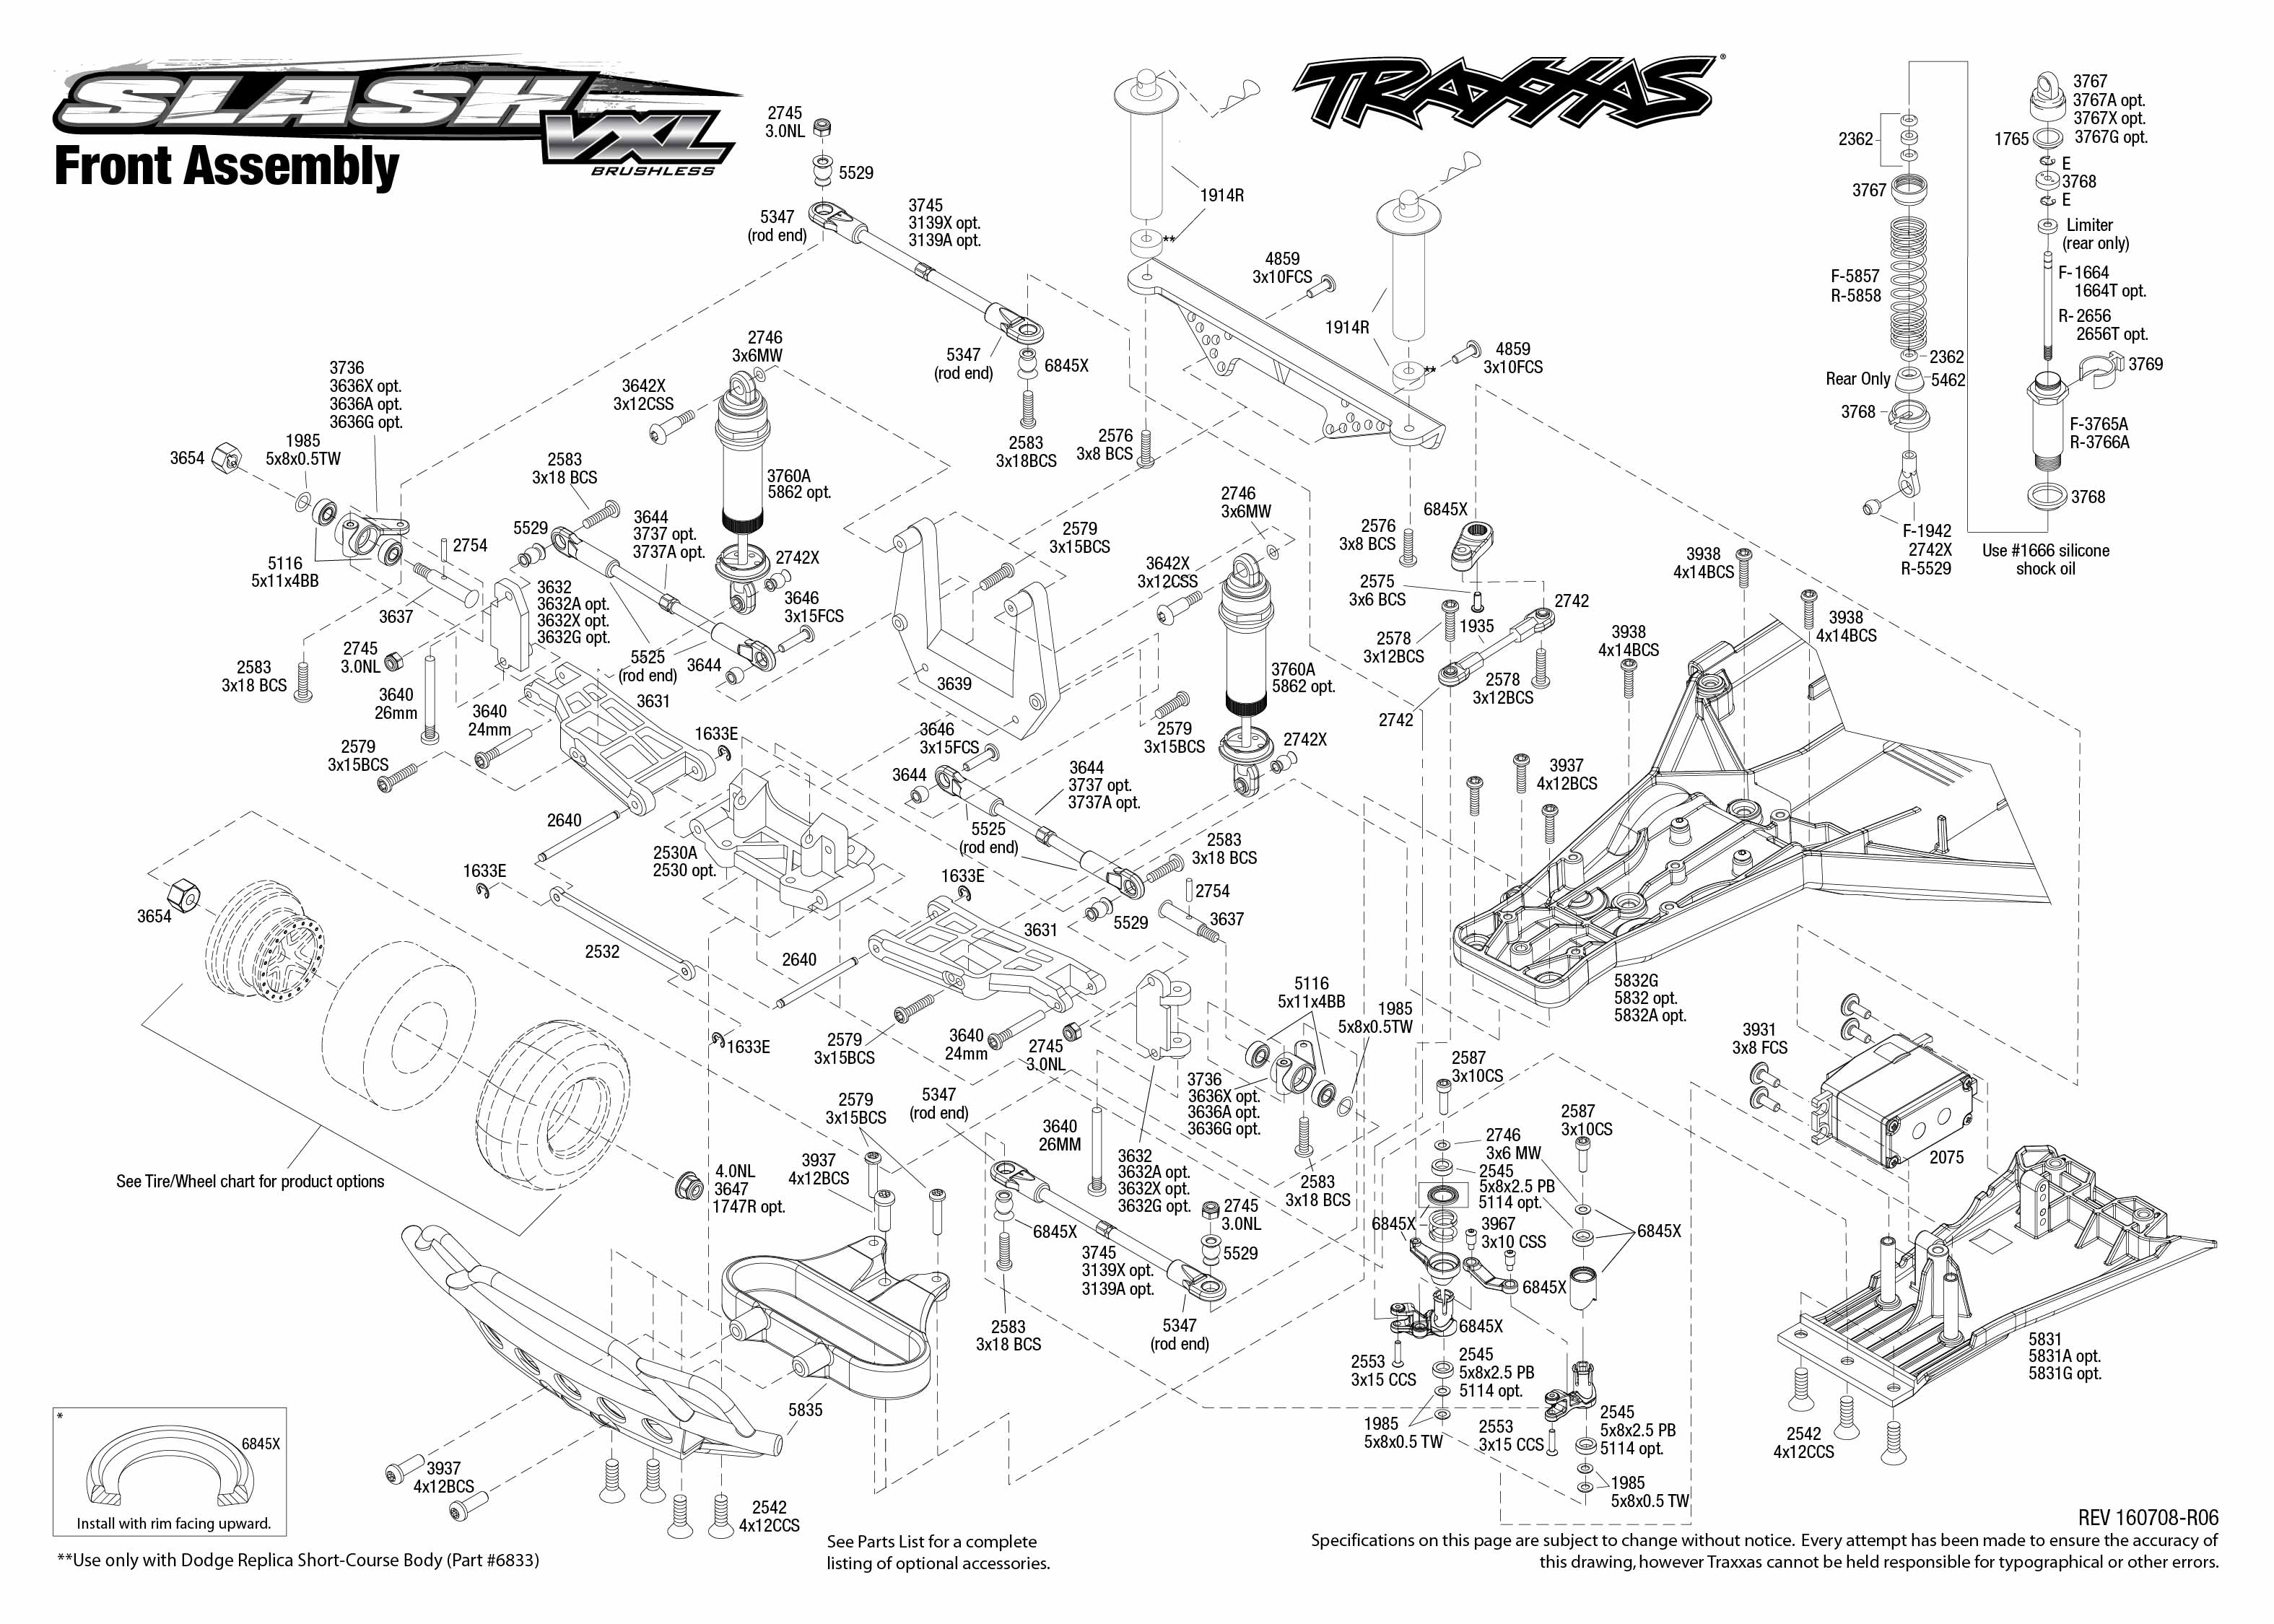 34 Traxxas Rustler Vxl Parts Diagram